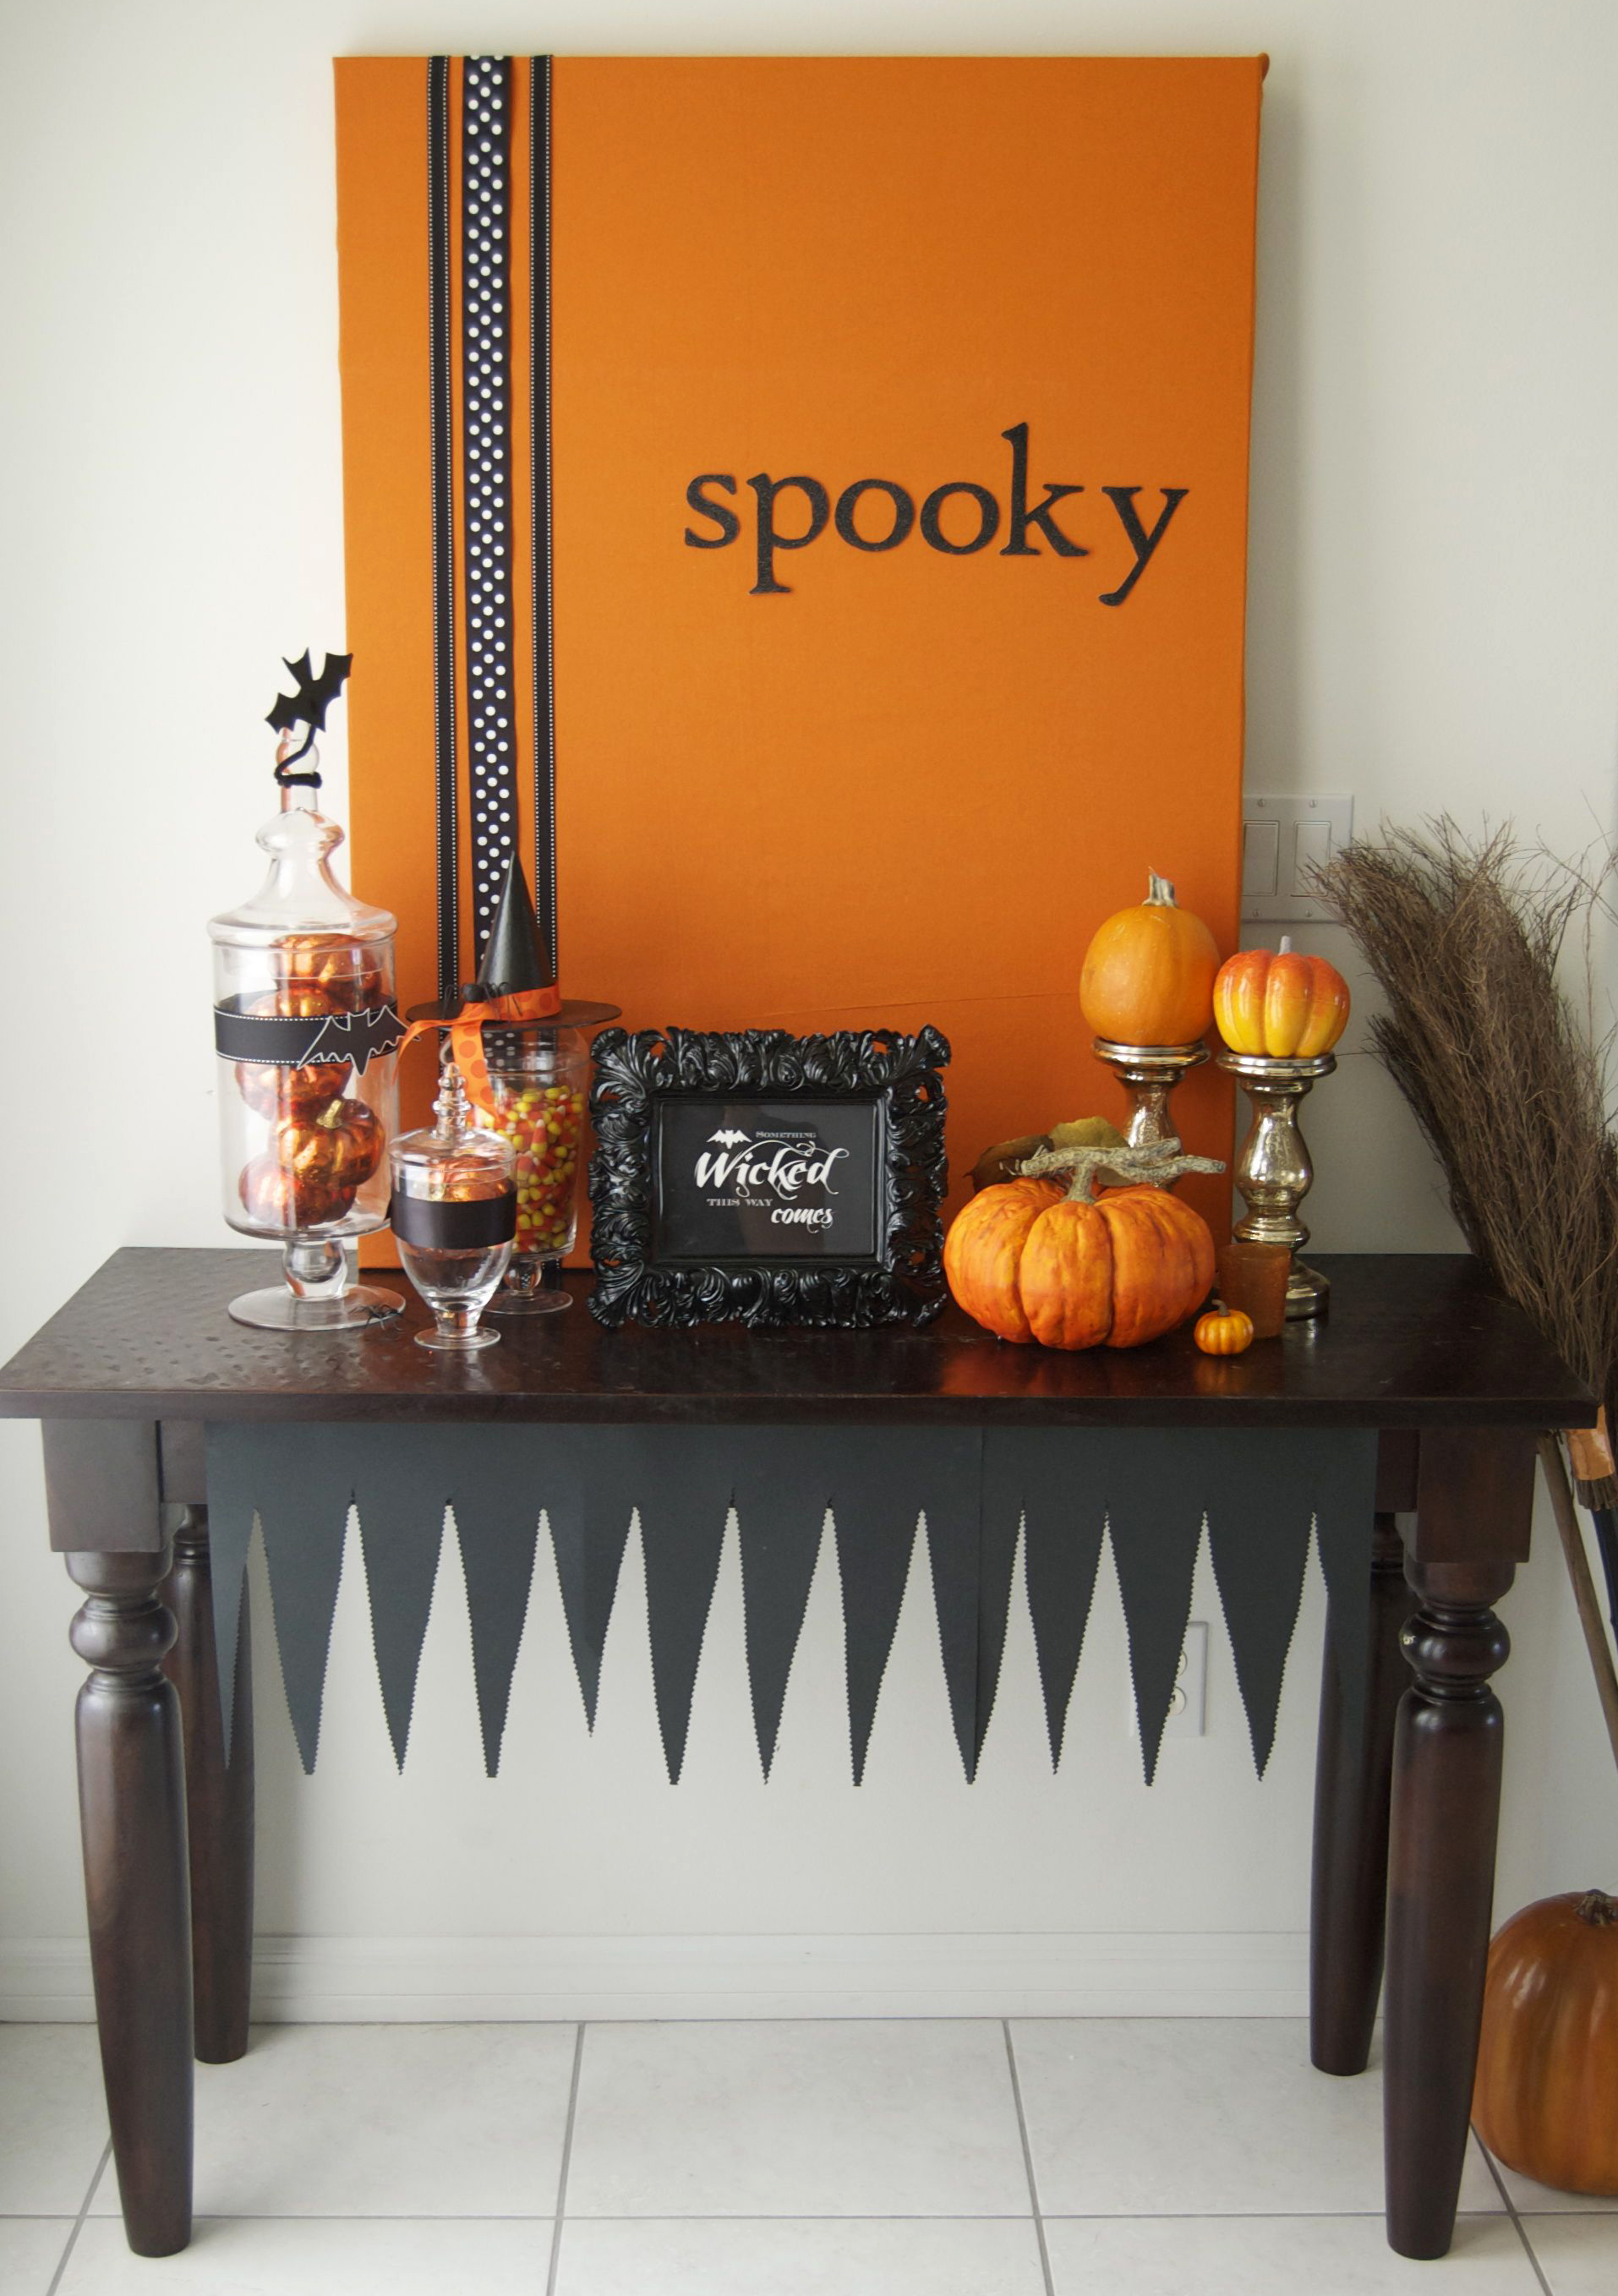 spooky-table